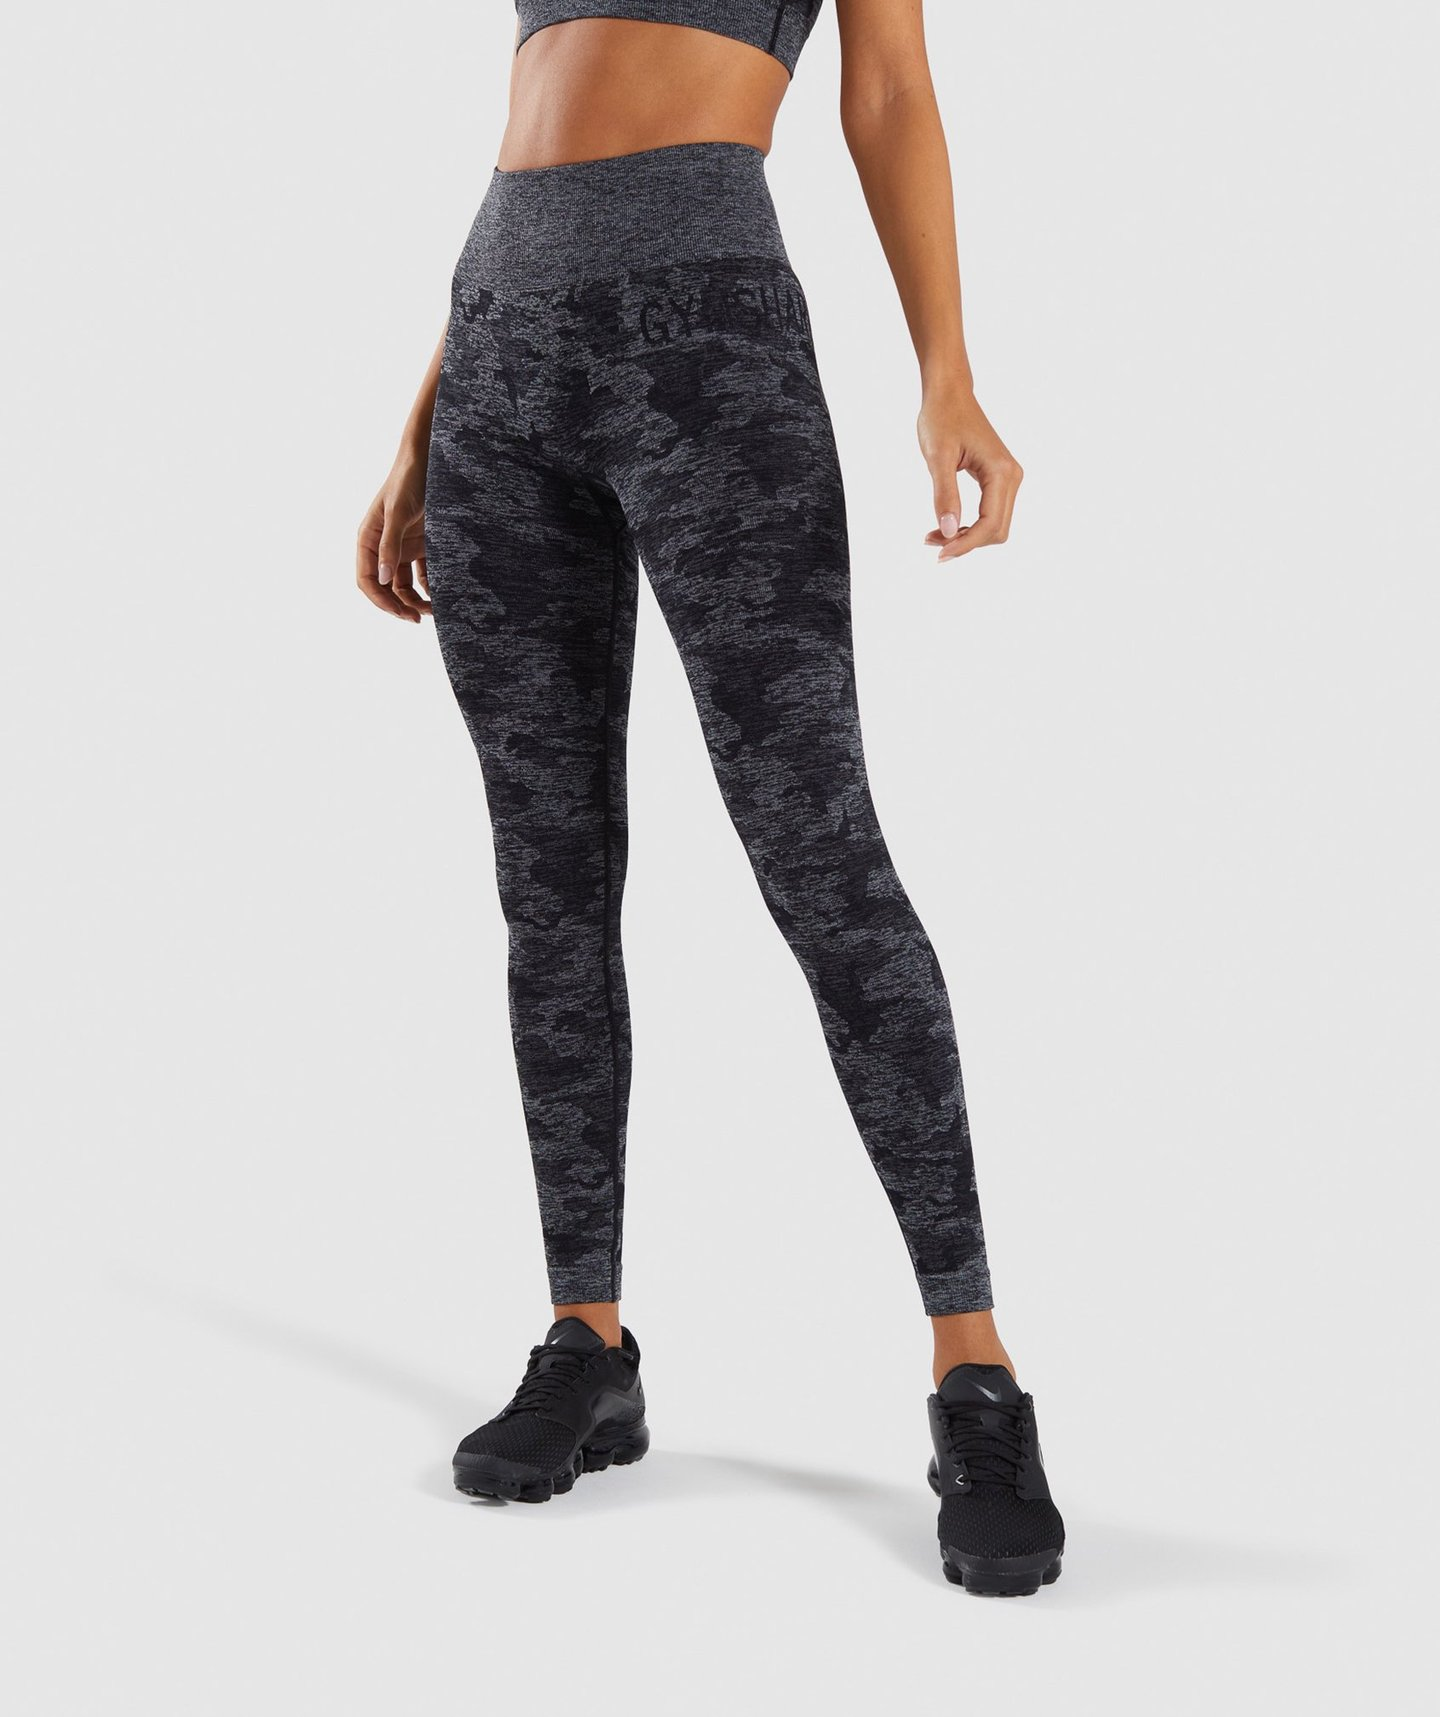 Gymshark CAMO SEAMLESS LEGGINGS